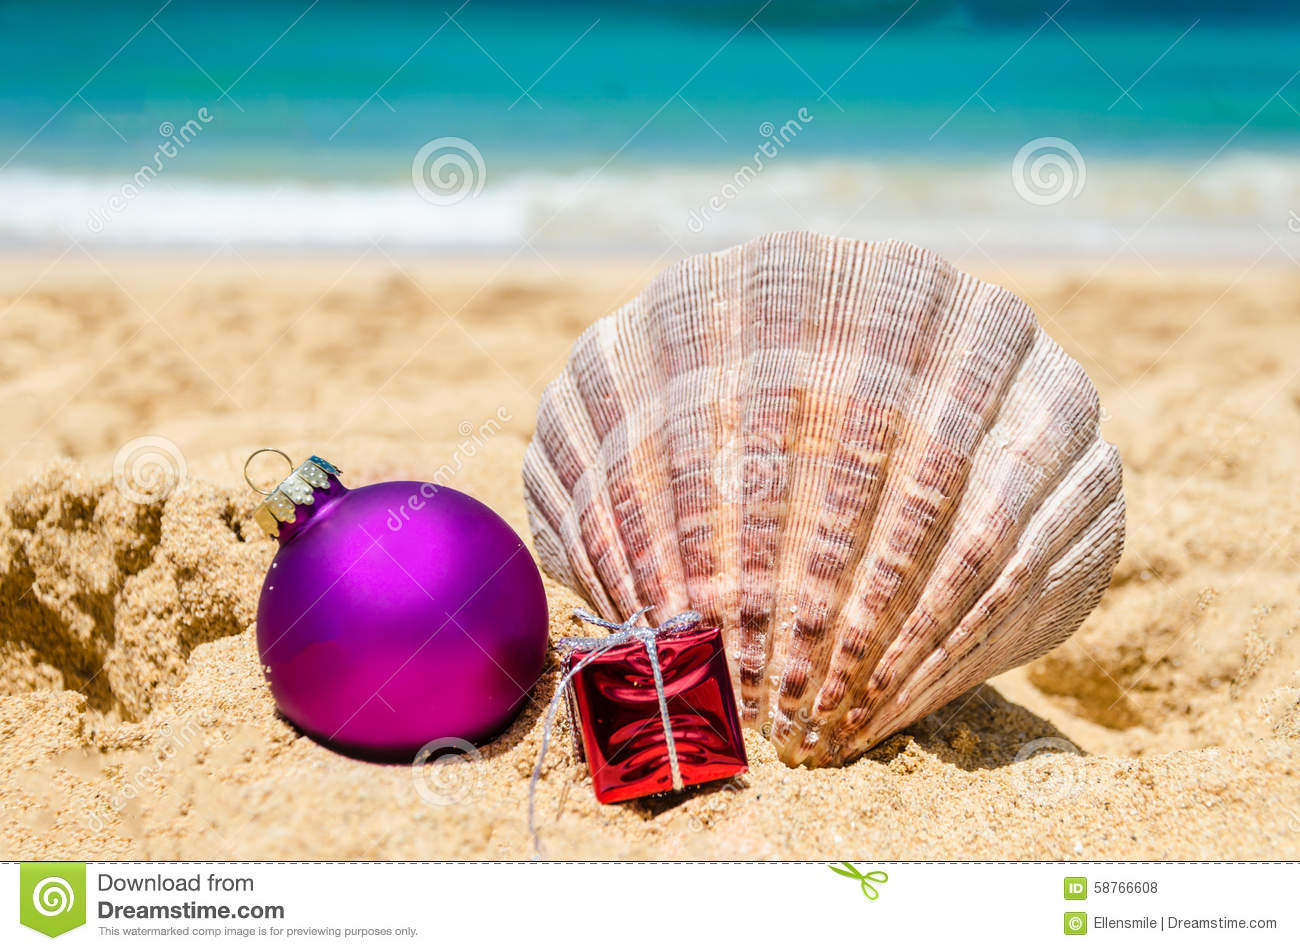 merry christmas and happy new year background with seashell gift and a ball on the tropical beach near ocean in hawaii - Merry Christmas In Hawaii